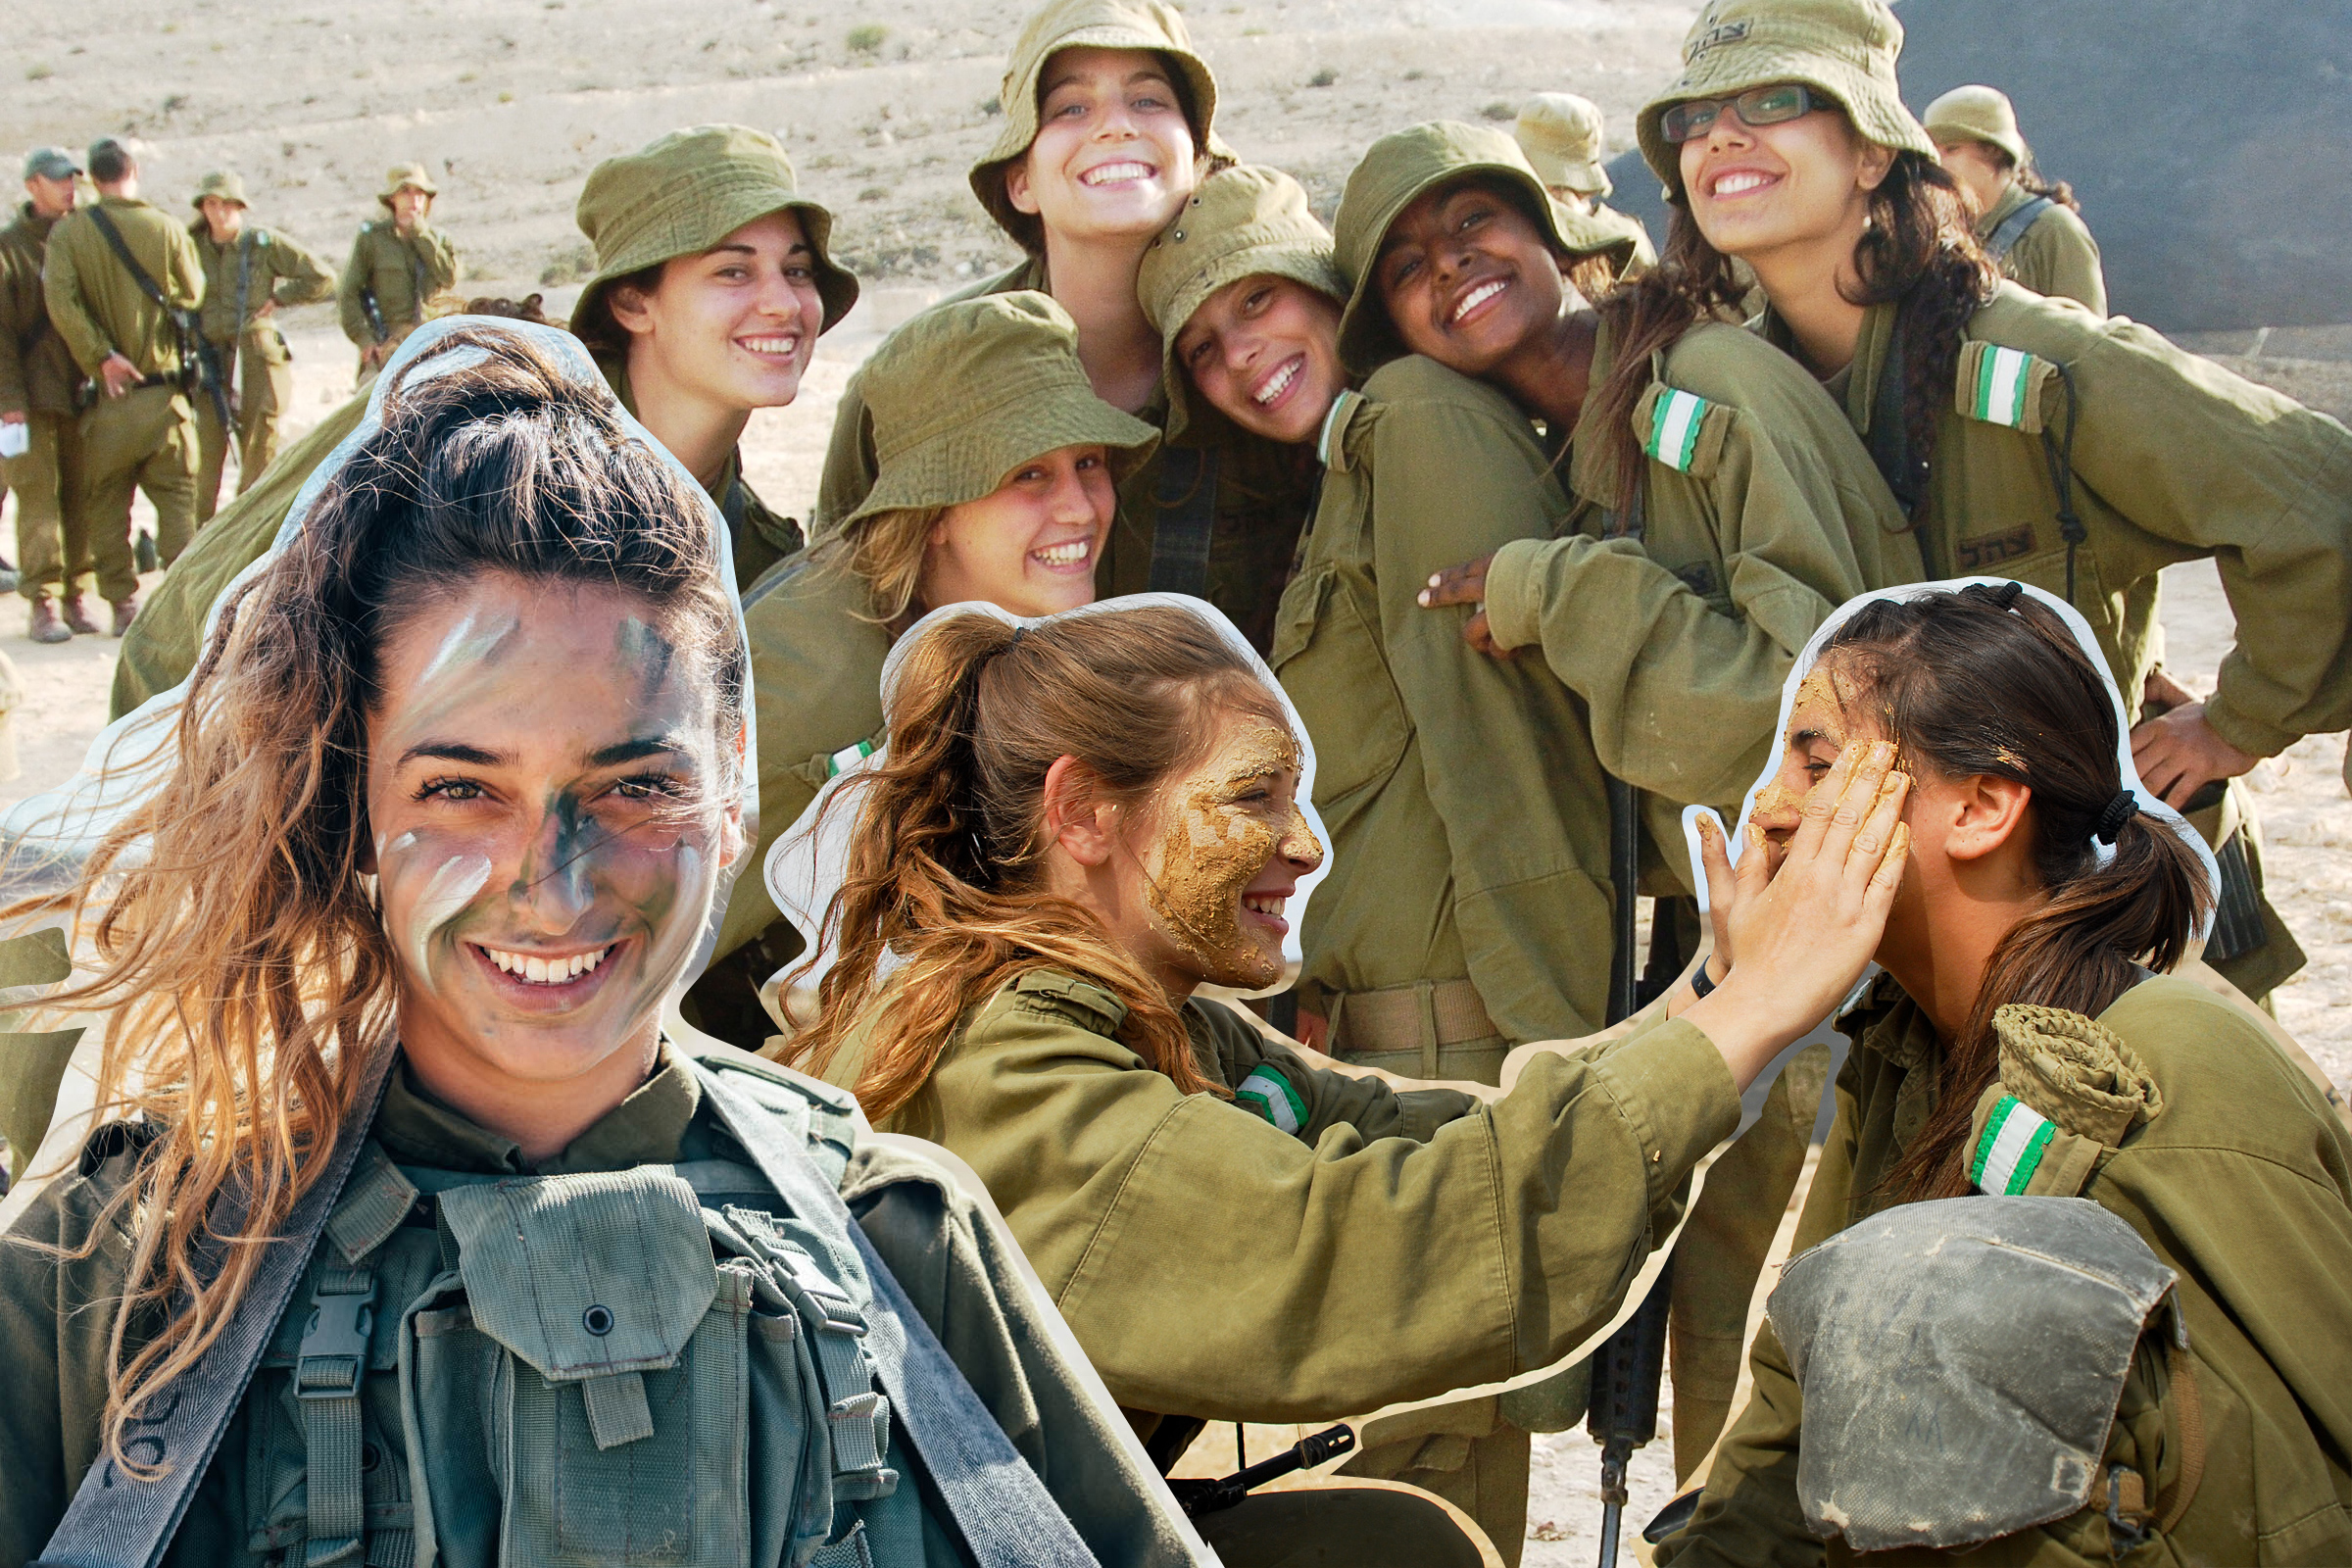 a collage of Israeli women in the IDF posing together, smiling, and touching each other's faces